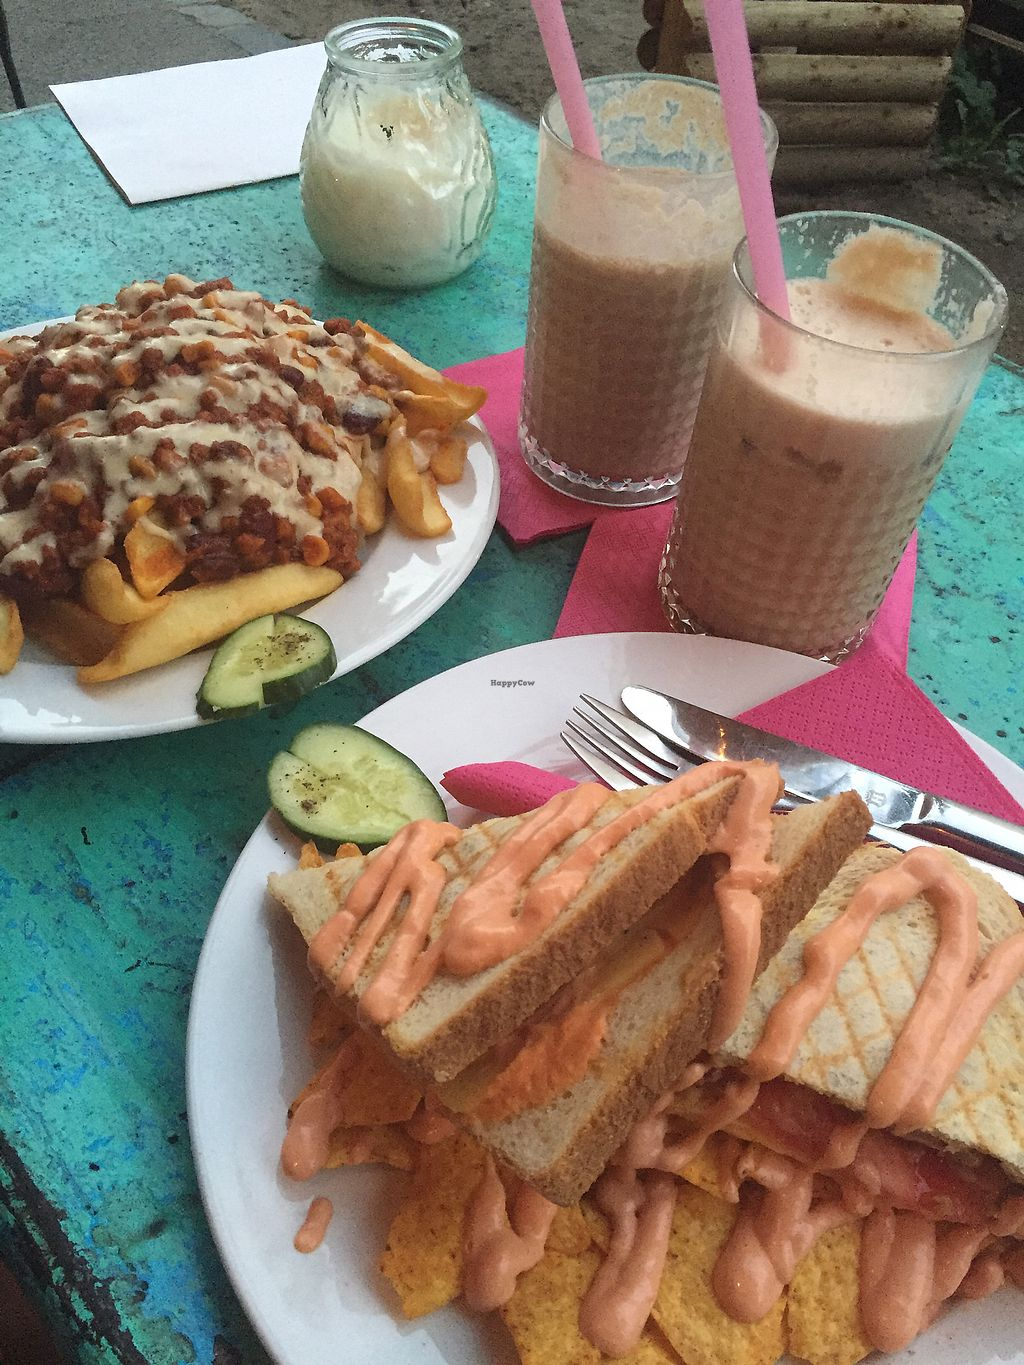 "Photo of Chaostheorie  by <a href=""/members/profile/Toristales"">Toristales</a> <br/>chilli cheese fried, sandwich, cocktail and millshake <br/> August 30, 2017  - <a href='/contact/abuse/image/40825/298887'>Report</a>"